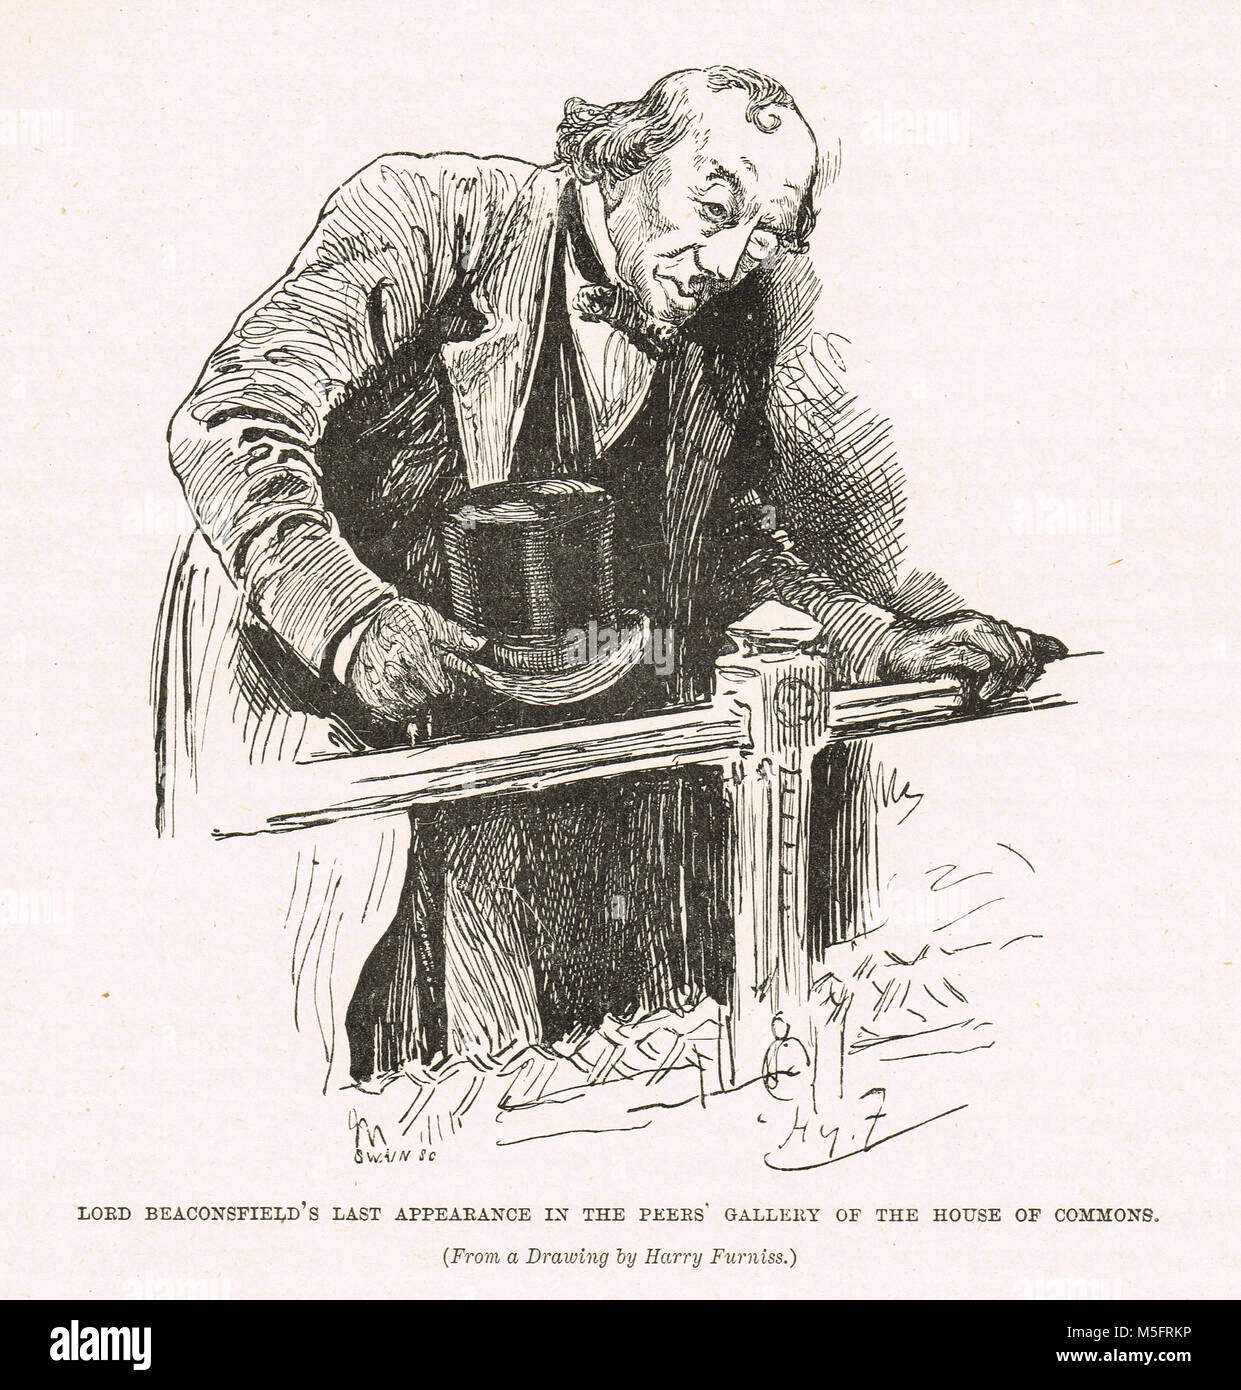 Benjamin Disraeli's last appearance in the Peers gallery, house of commons, circa 1881 - Stock Image